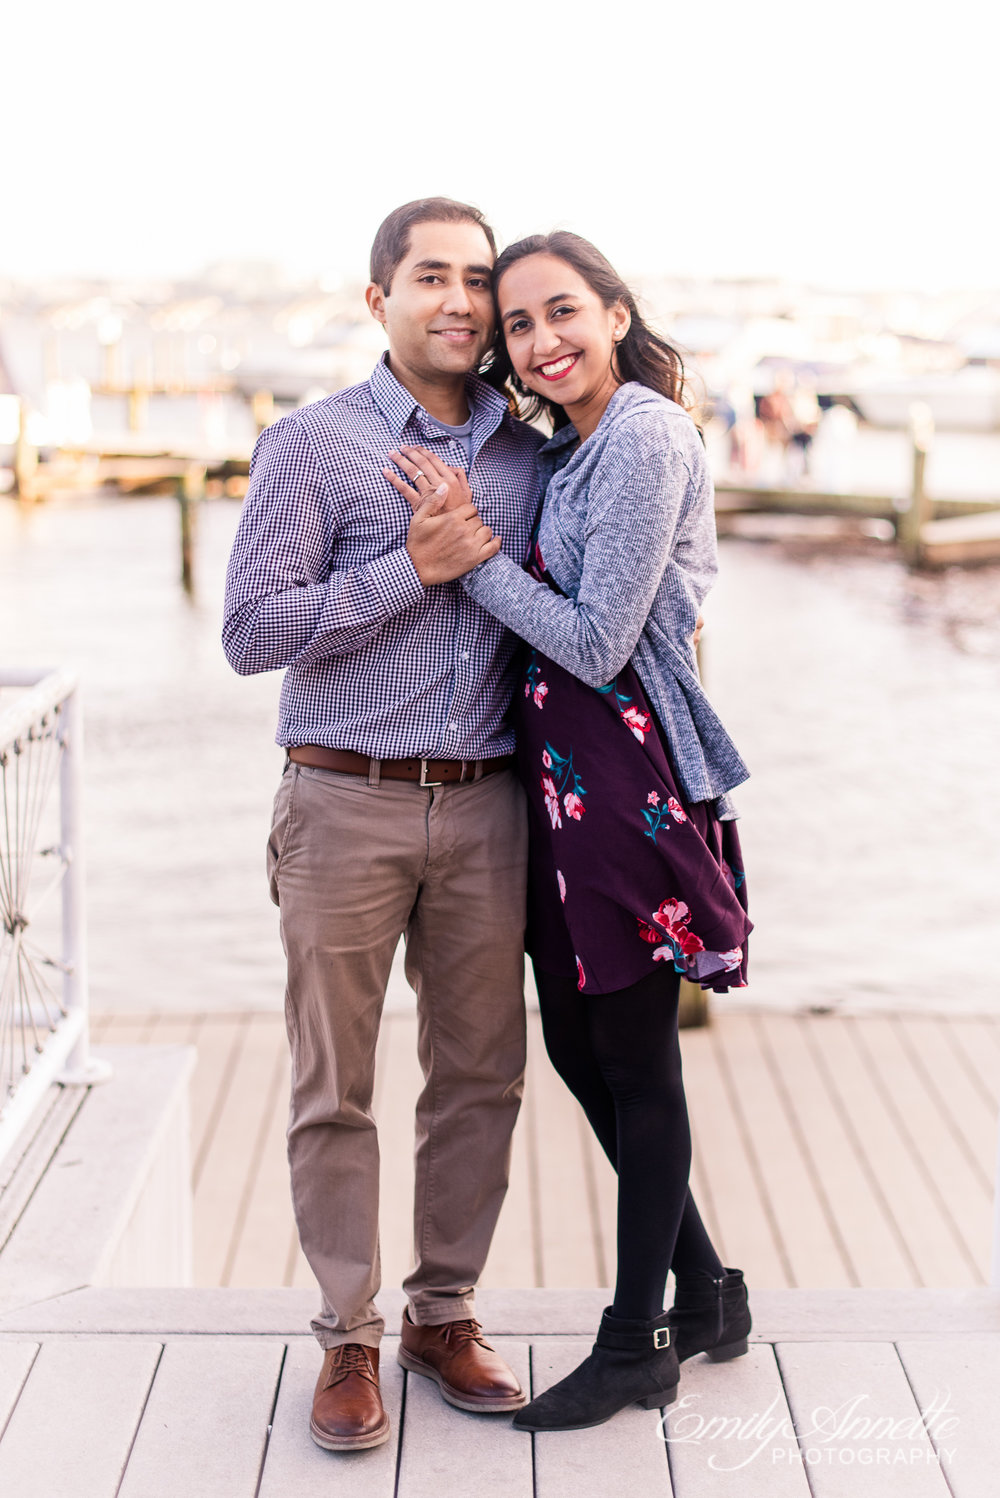 An engaged couple poses by the Potomac River docks in Old Town Alexandria Virginia for an engagement session